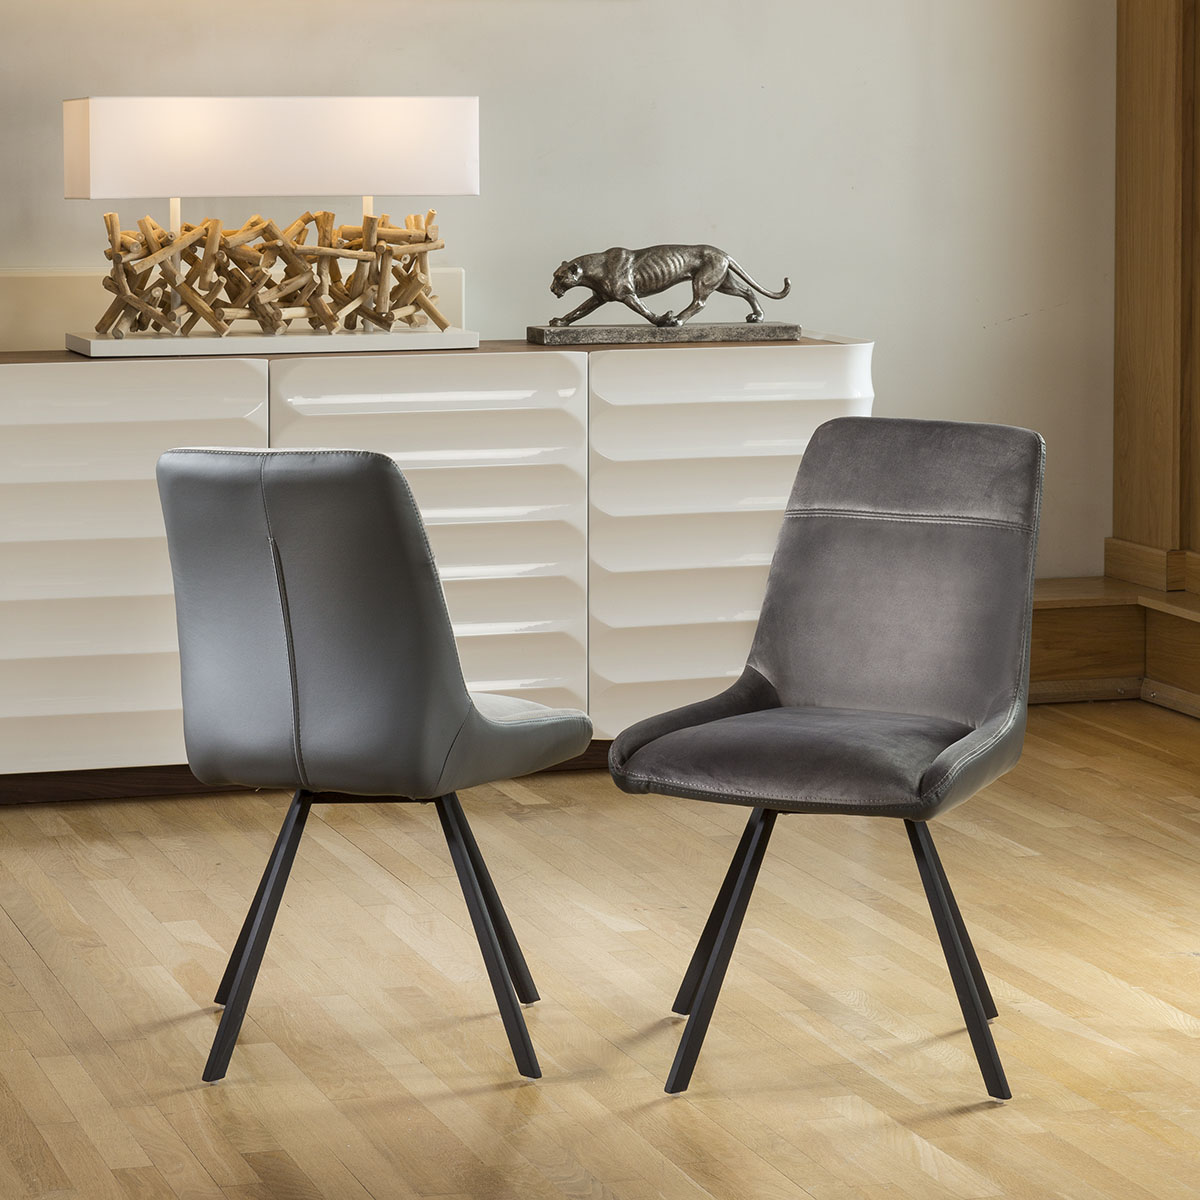 Swell Details About Set Of 2 Stylish Quatropi 360 Swivel Dining Chairs Grey Fabric 7250 Ncnpc Chair Design For Home Ncnpcorg